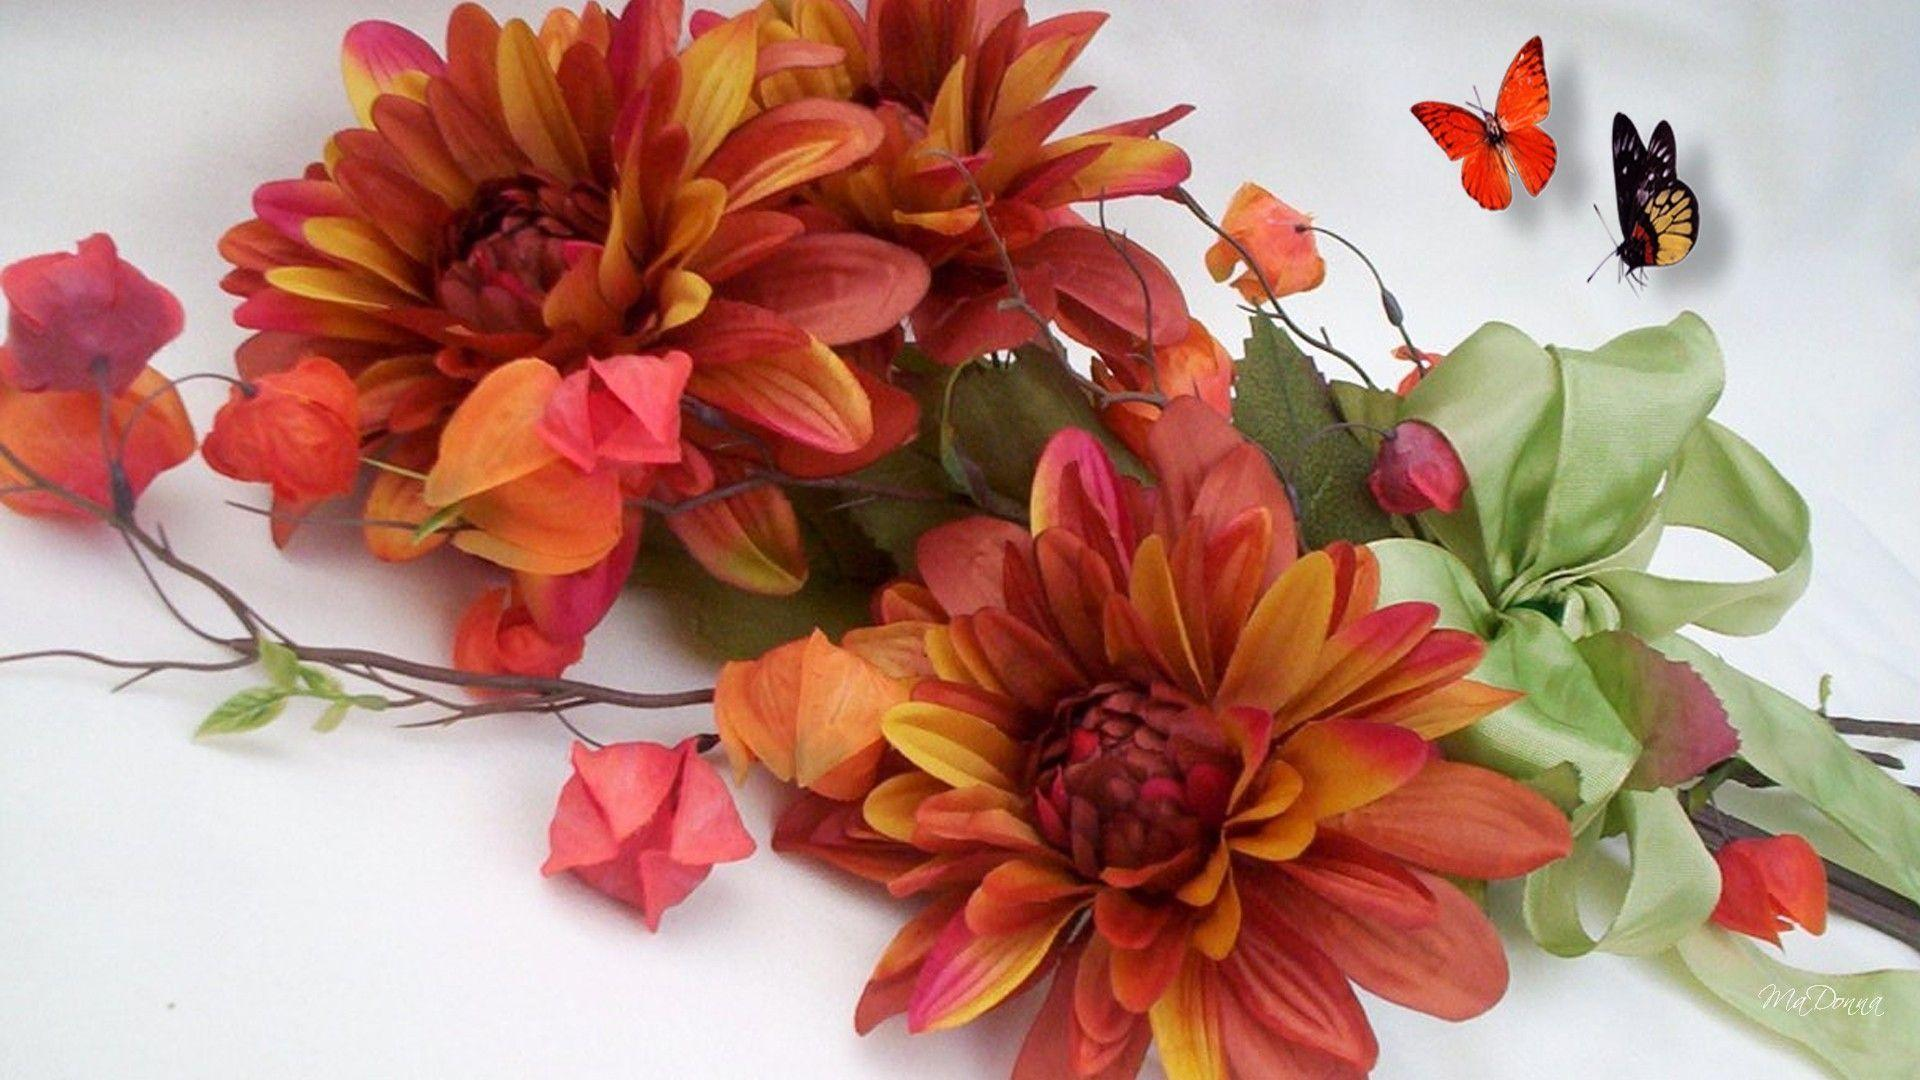 fall flowers wallpaper by - photo #13